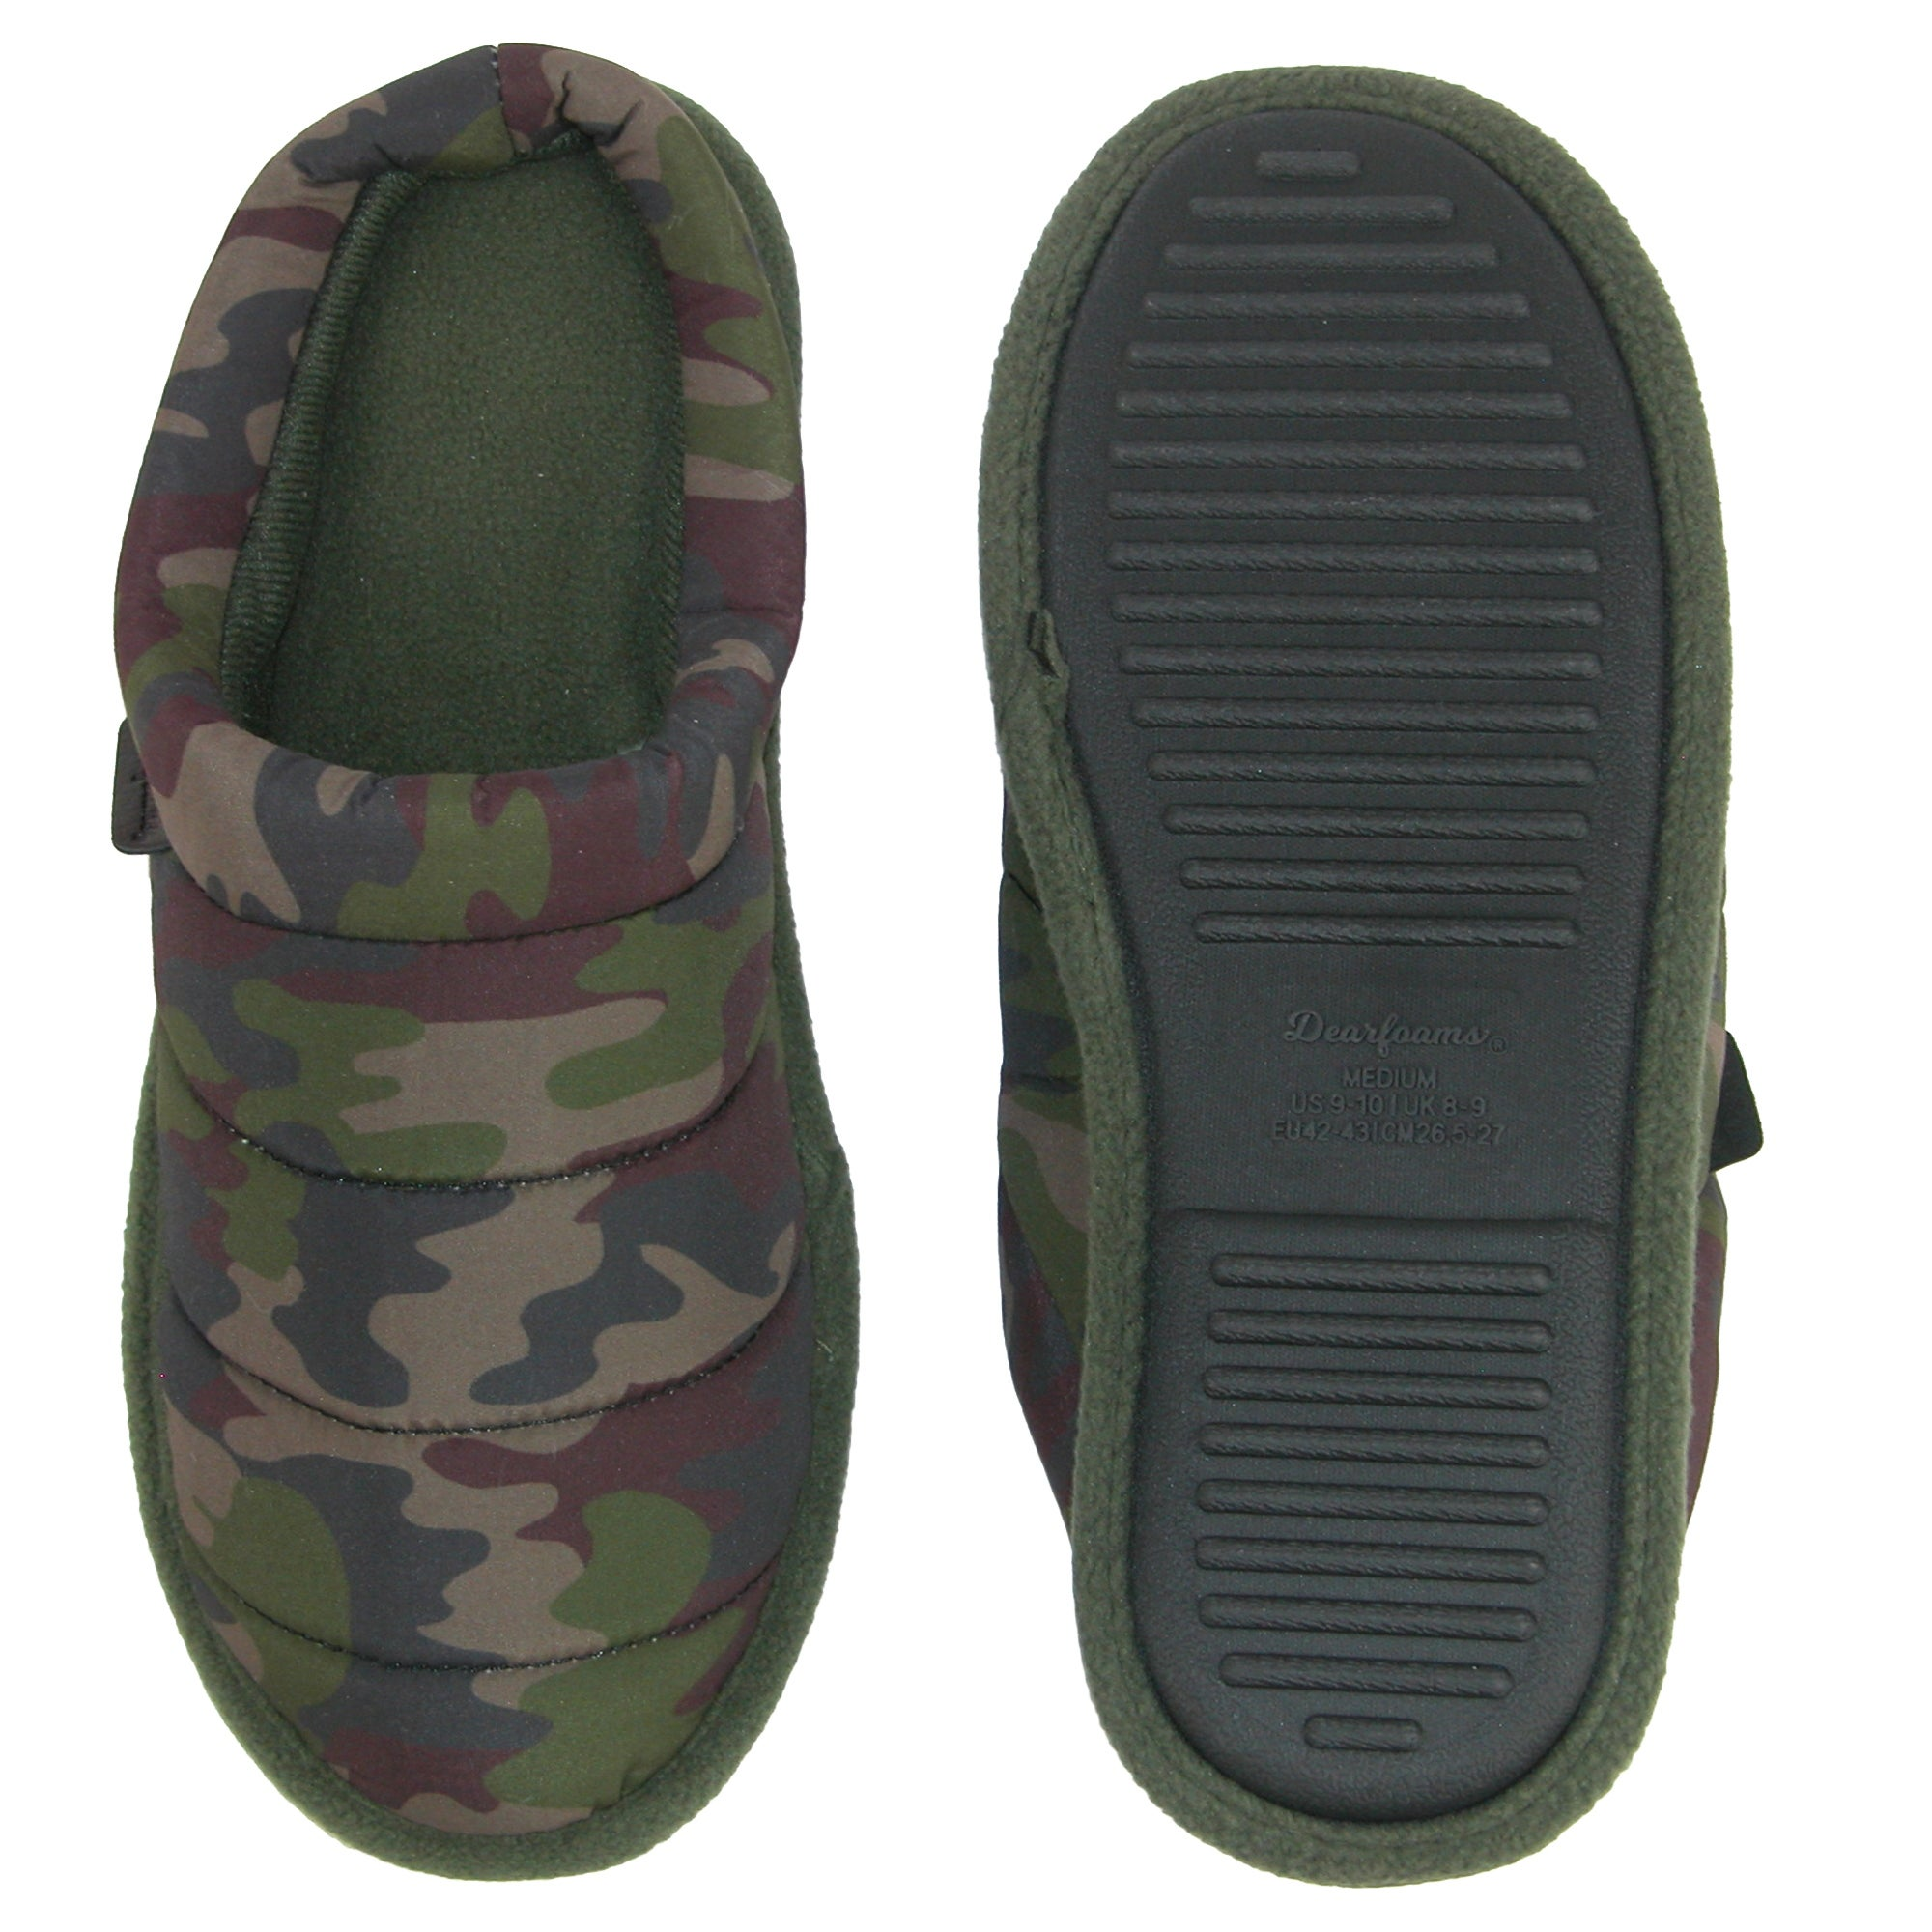 b52433271e779 Shop Dearfoams Men's Camouflage Quilted Clog Slipper with Memory Foam -  Free Shipping On Orders Over $45 - Overstock - 18753408